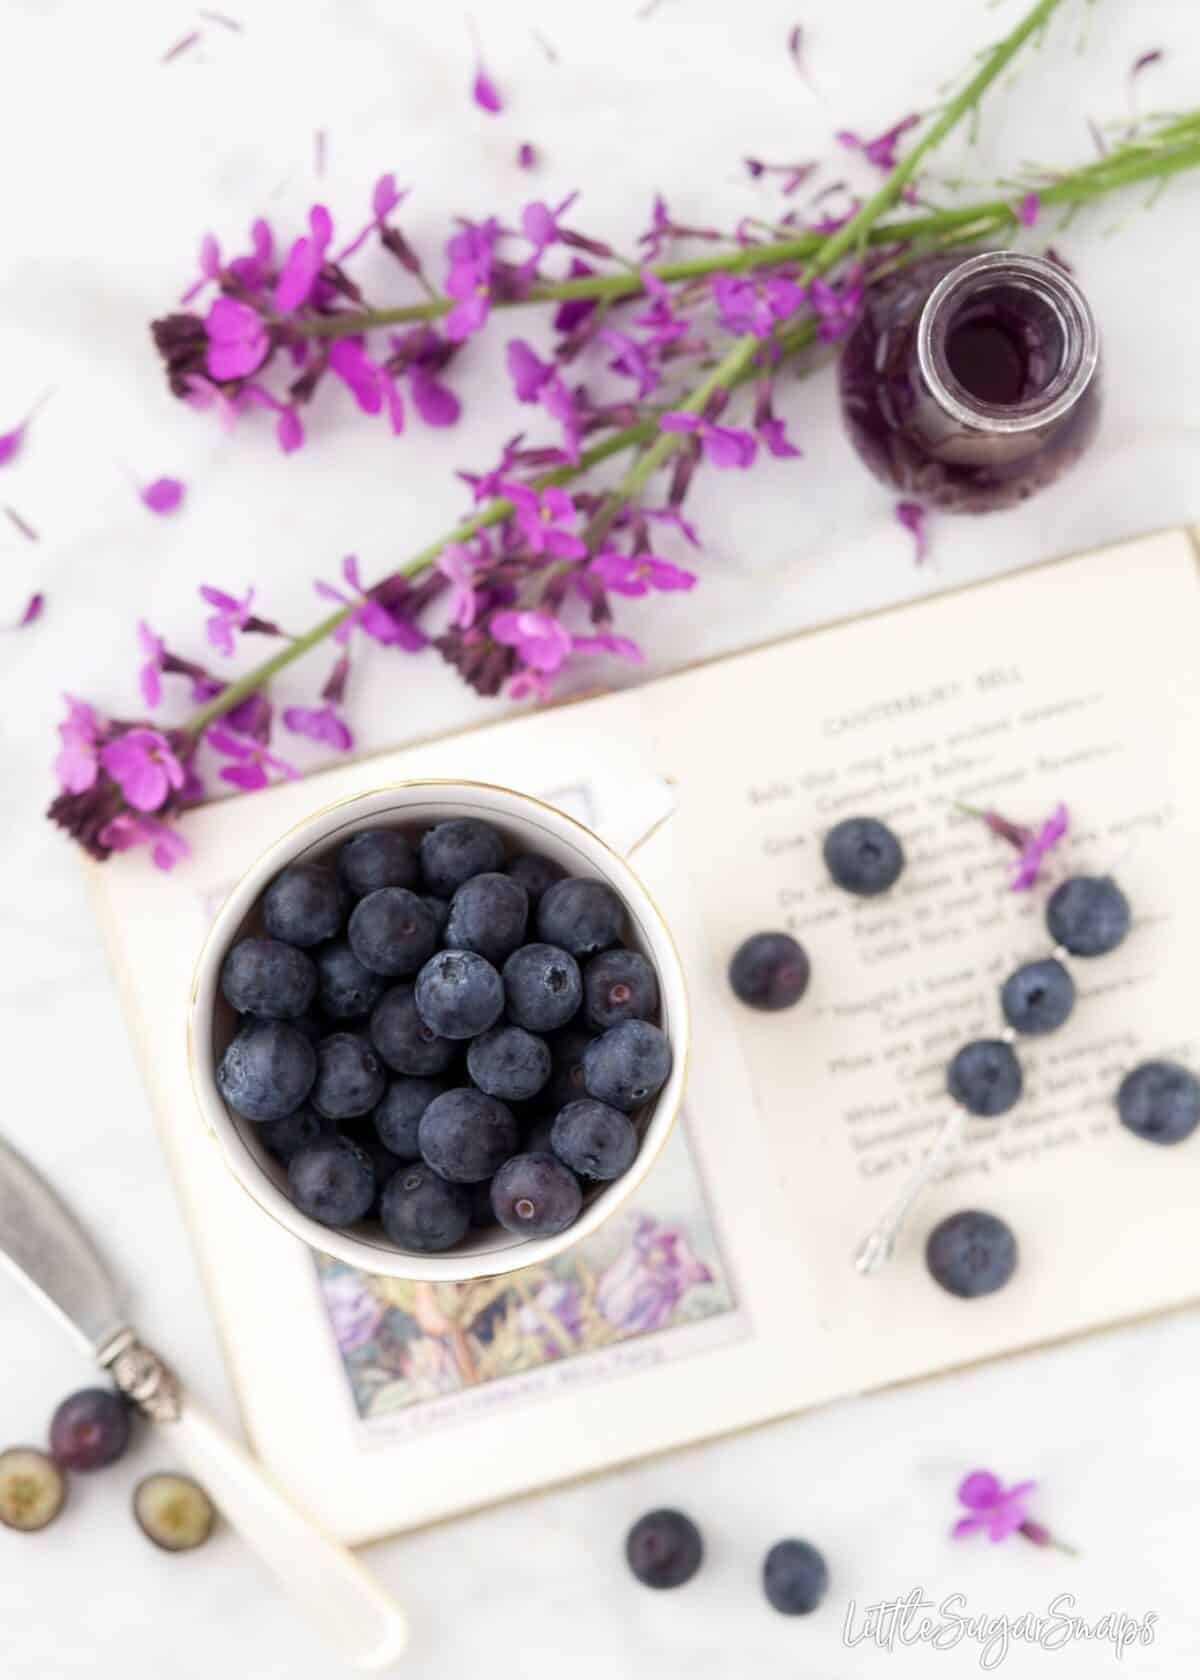 A bowl of blueberries with purple flowers